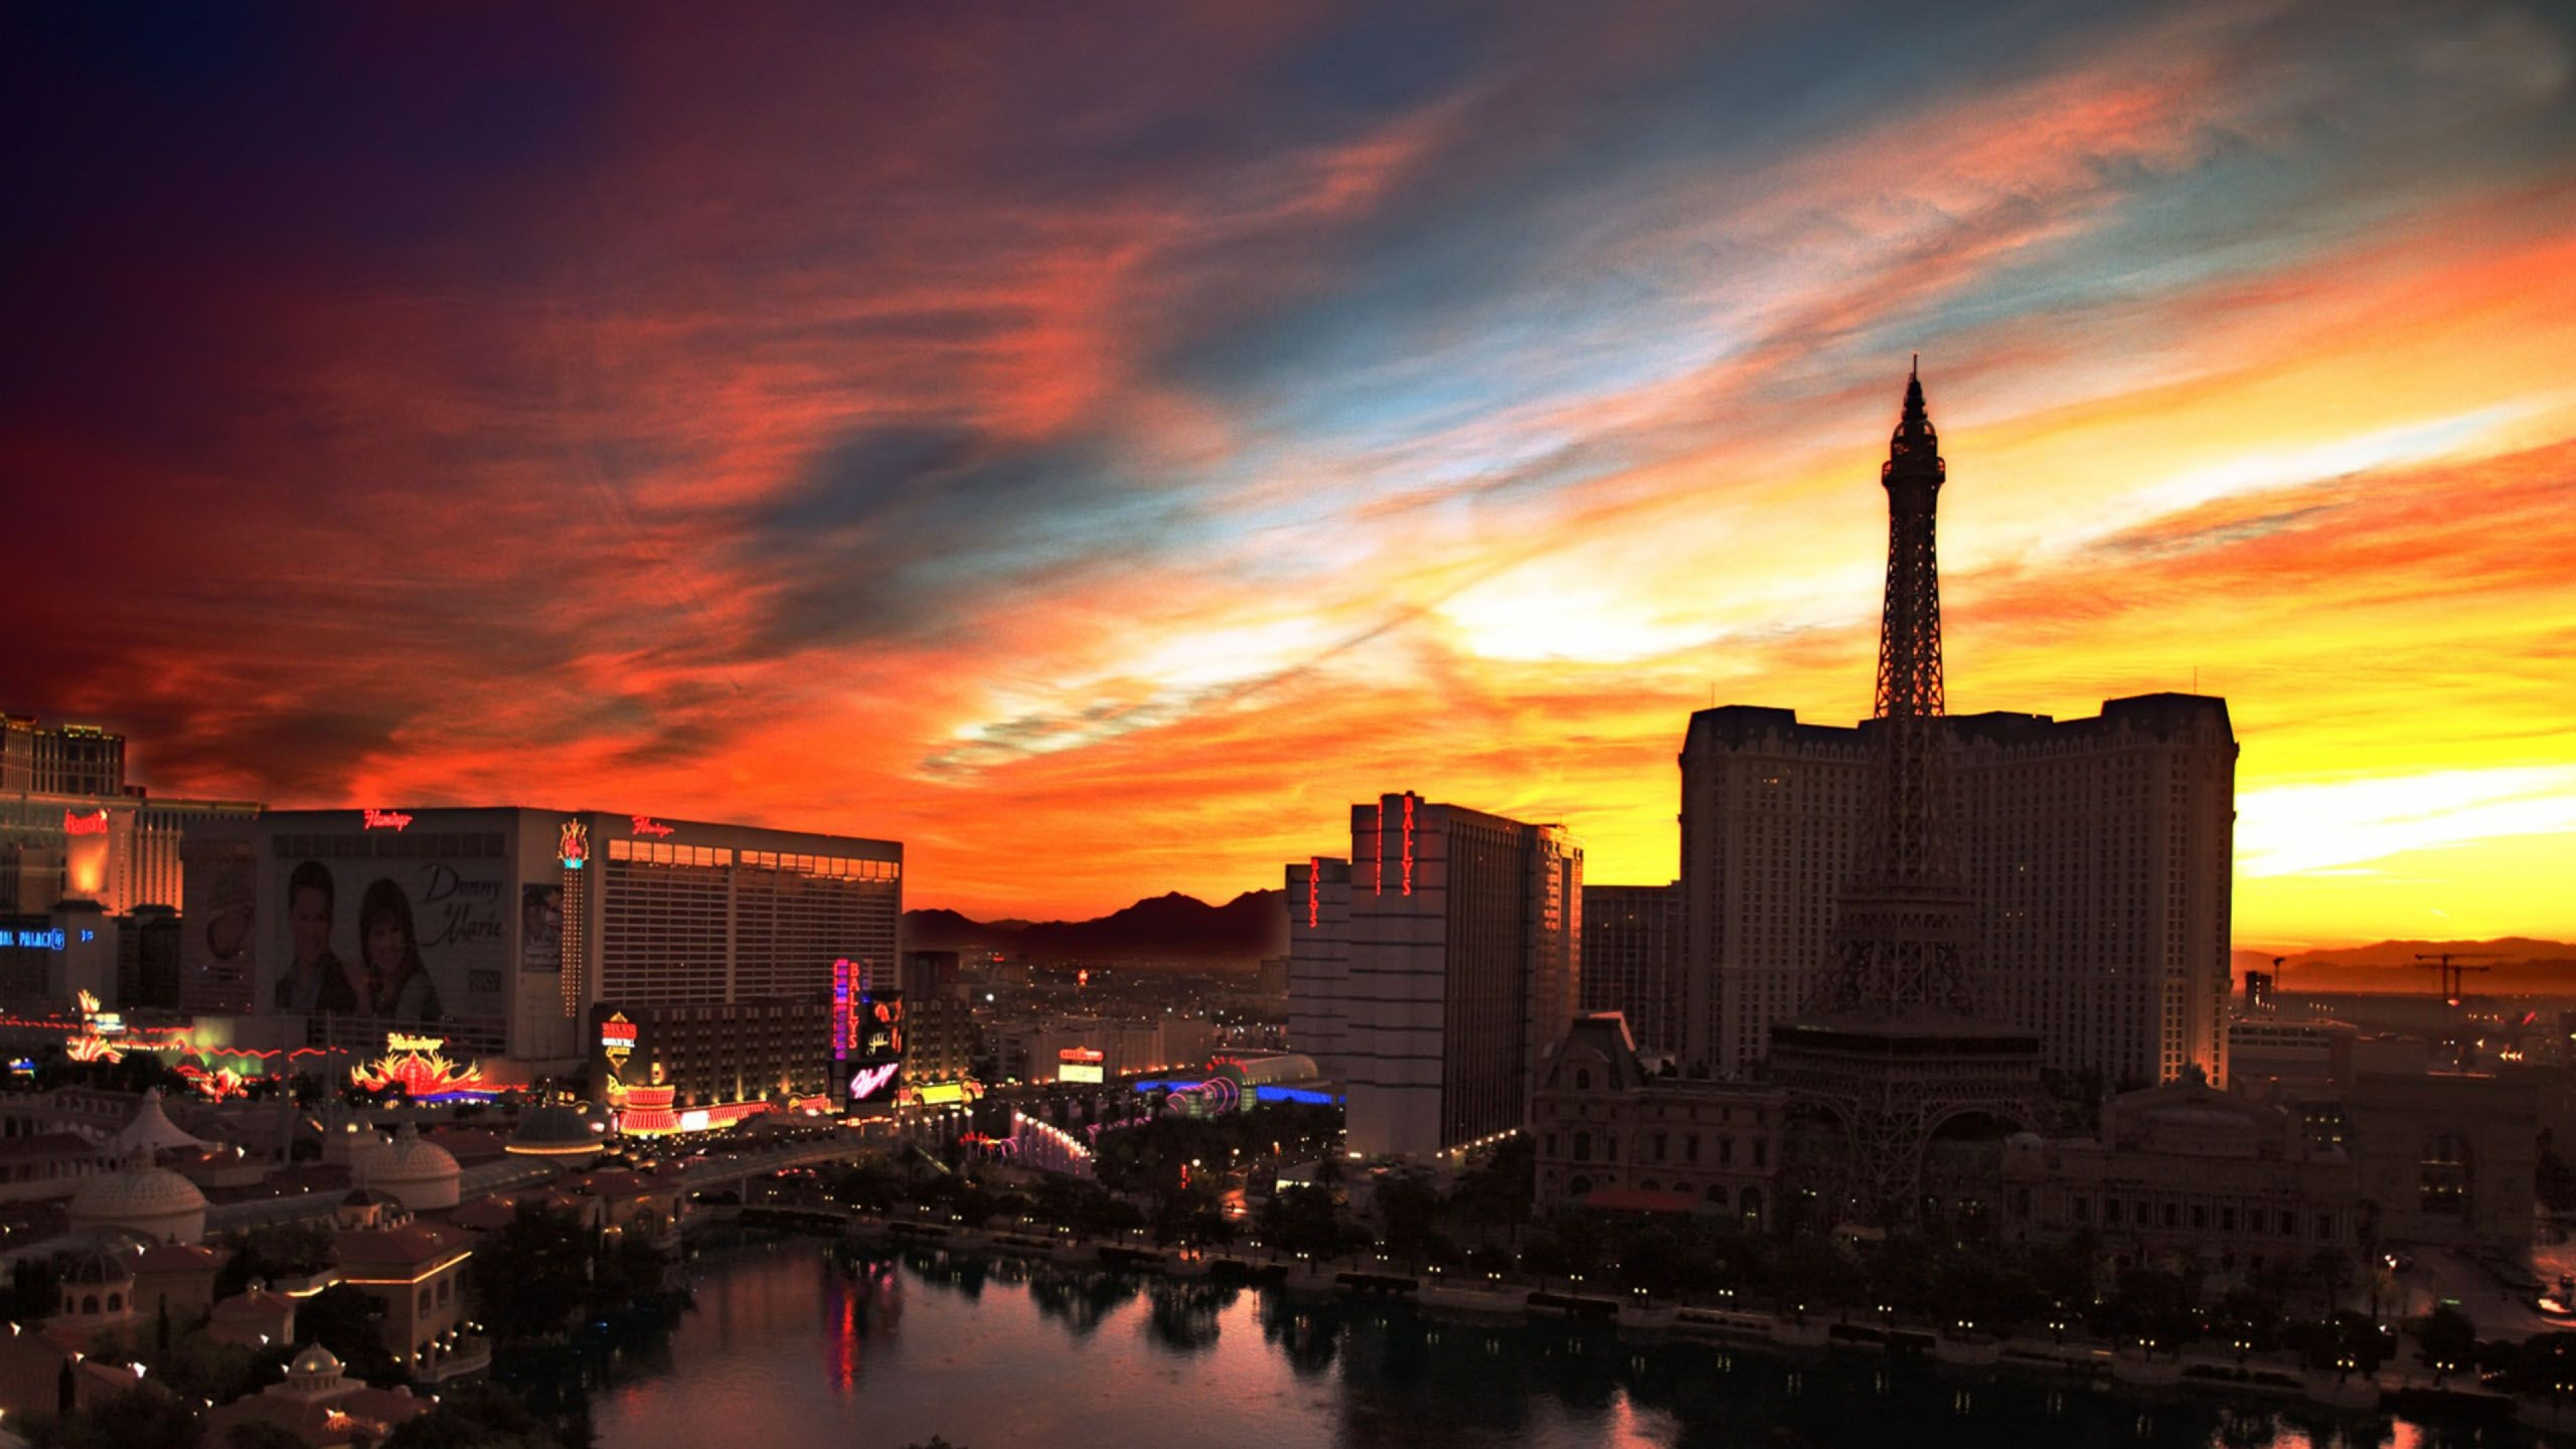 Las Vegas Strip Hd Wallpaper Las Vegas Hd Wallpapers Pixelstalk Net